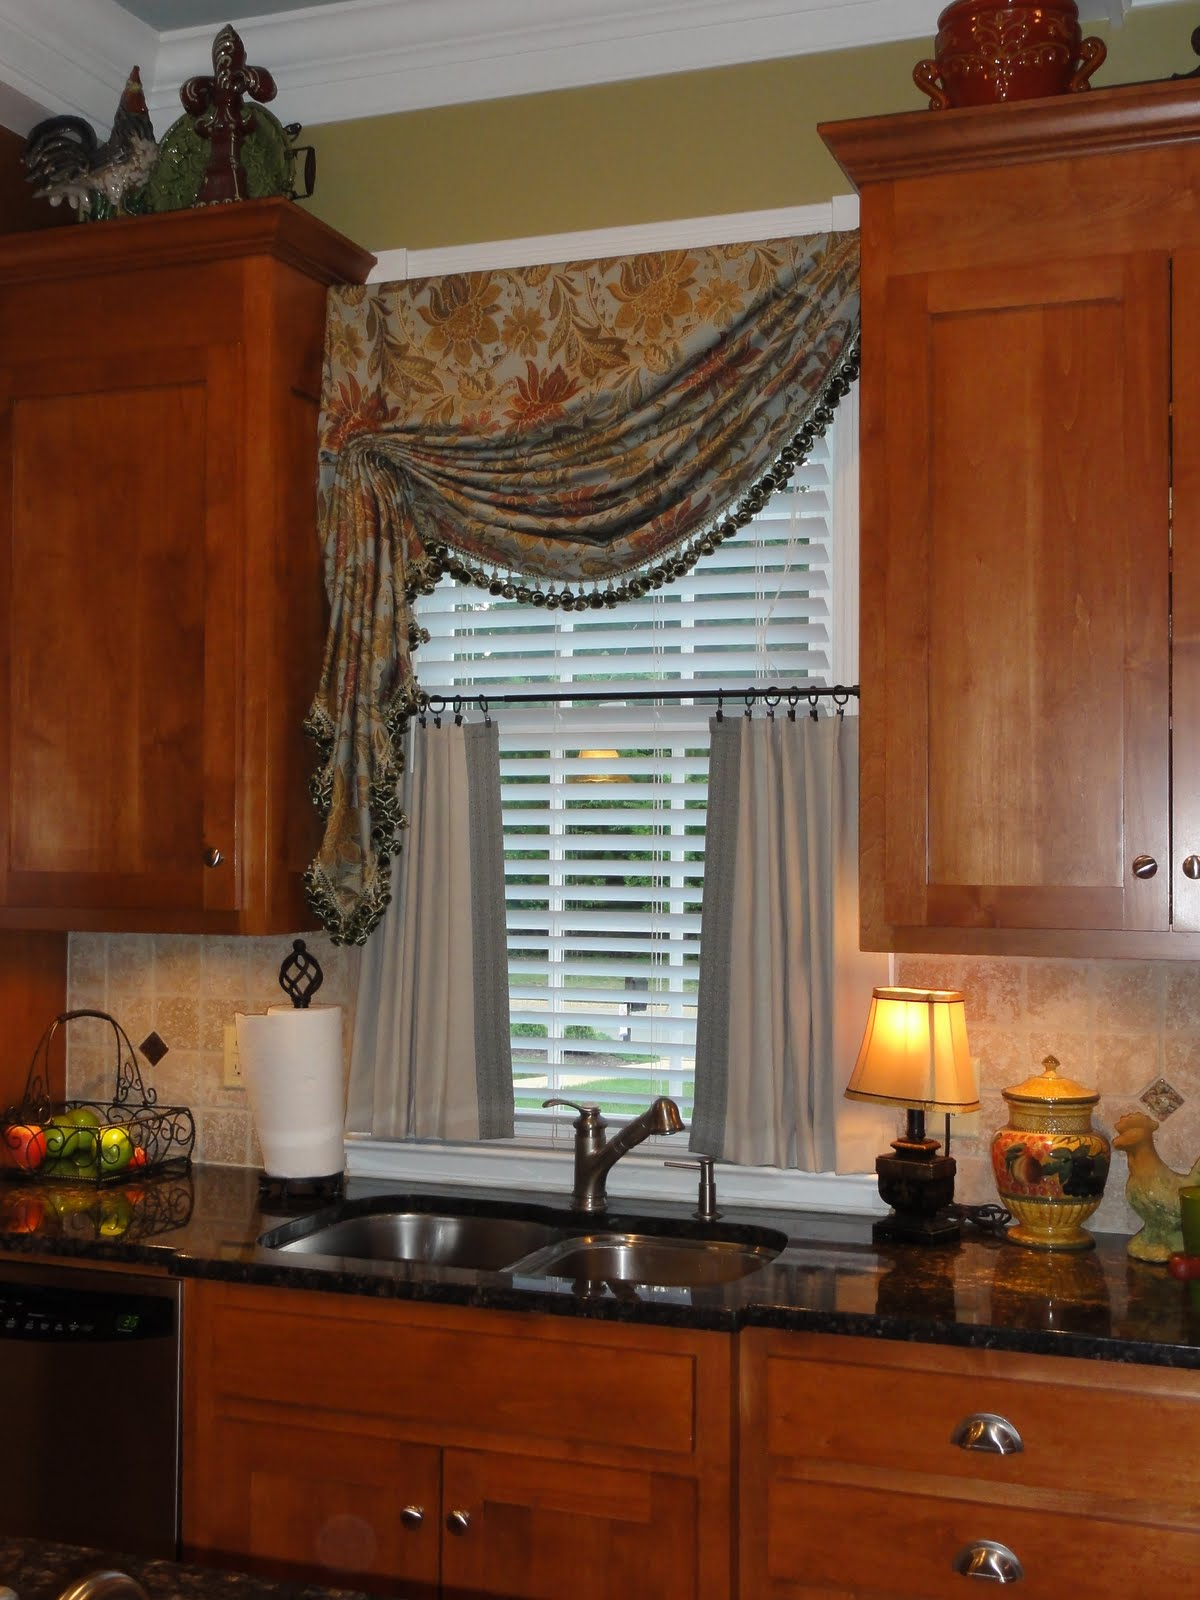 Simply by sabrina kitchen window treatment add on for Bay window treatments ideas kitchen